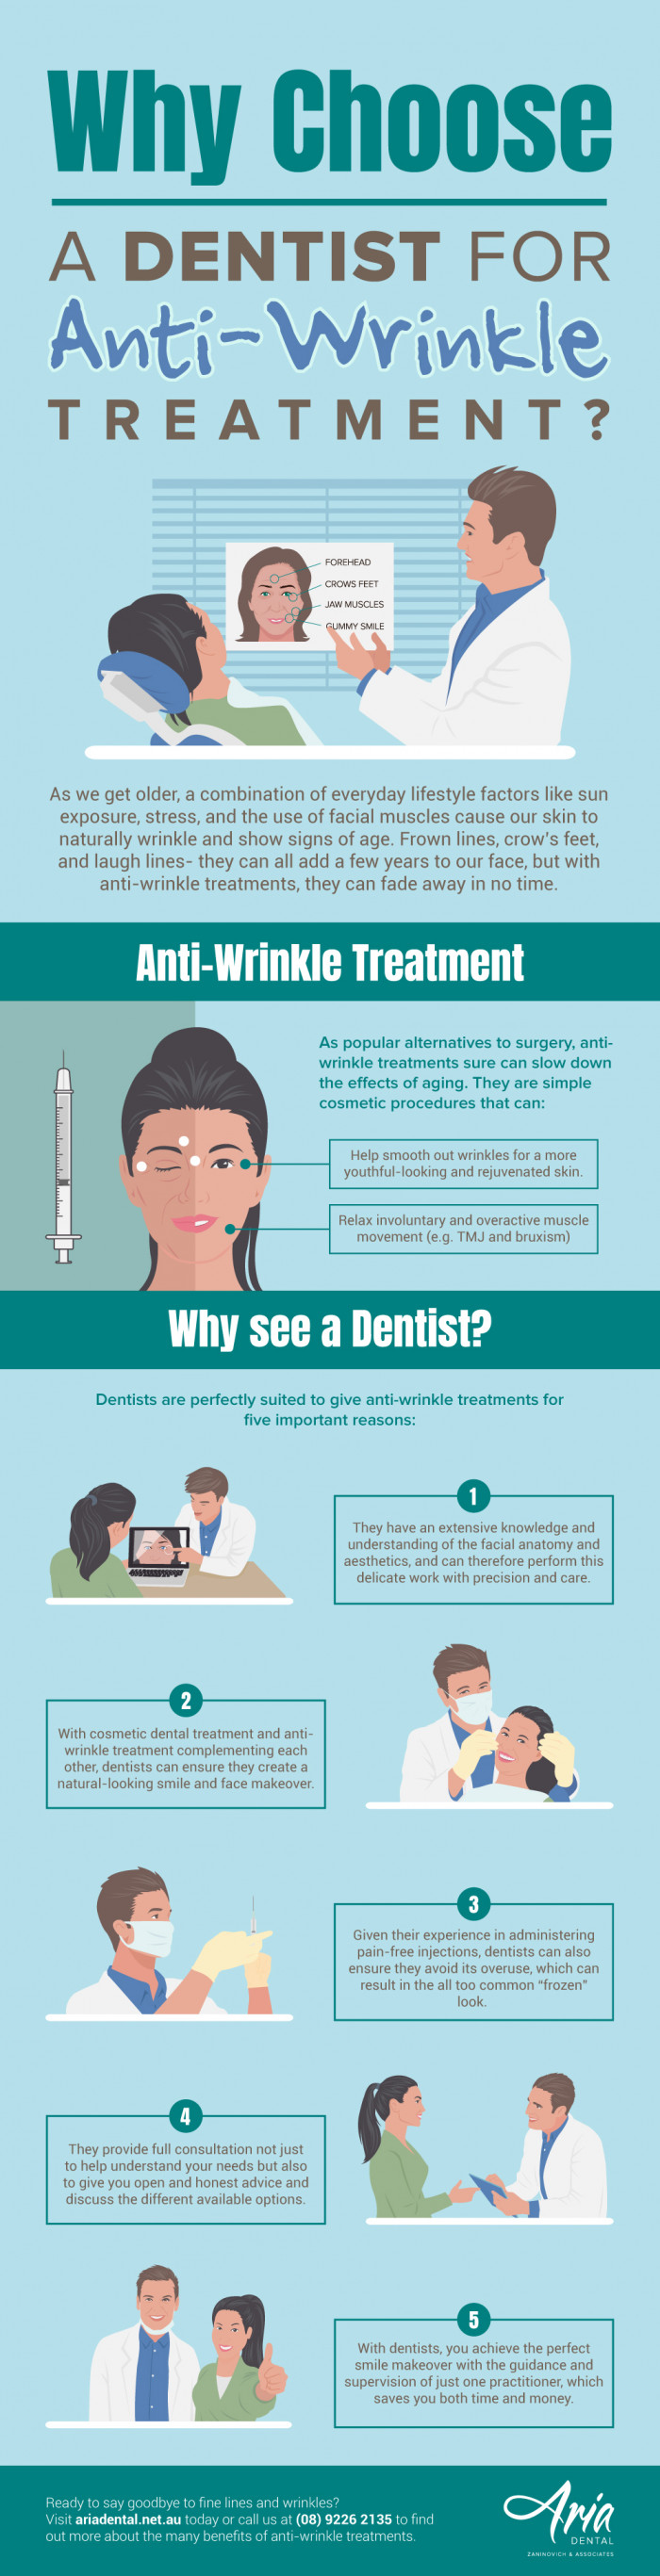 Why Choose a Dentist for Anti-Wrinkle Treatment